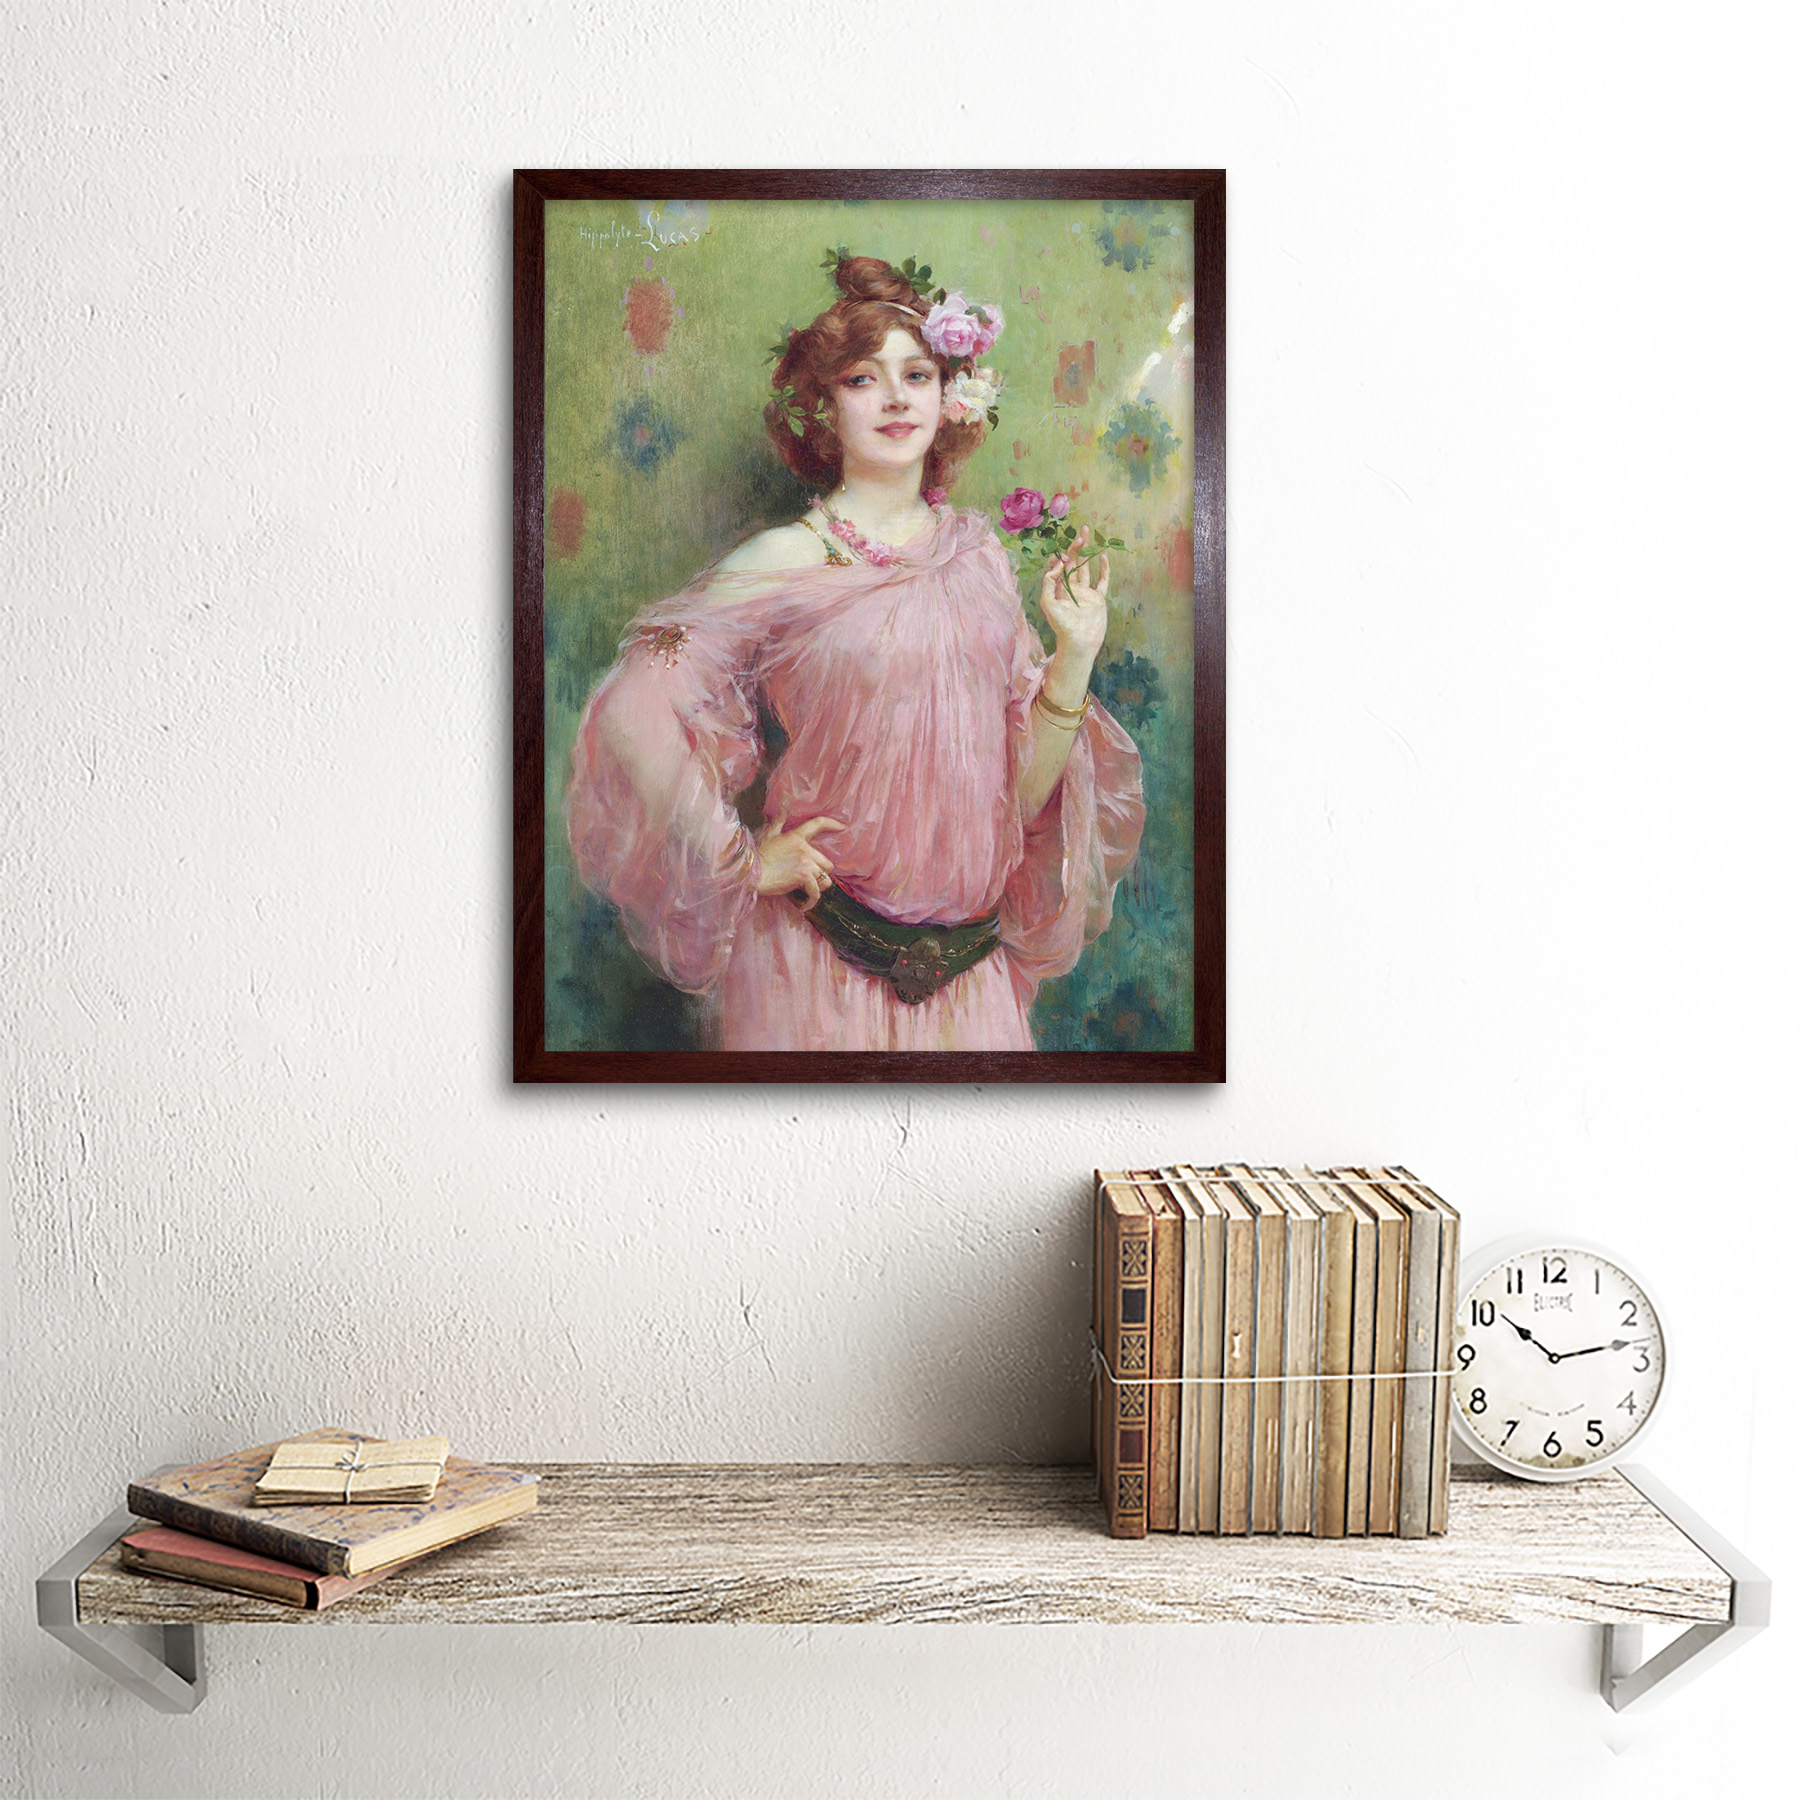 Hippolyte-Lucas-Beauty-In-Pink-Woman-Flowers-Painting-Art-Print-Framed-12x16 thumbnail 8